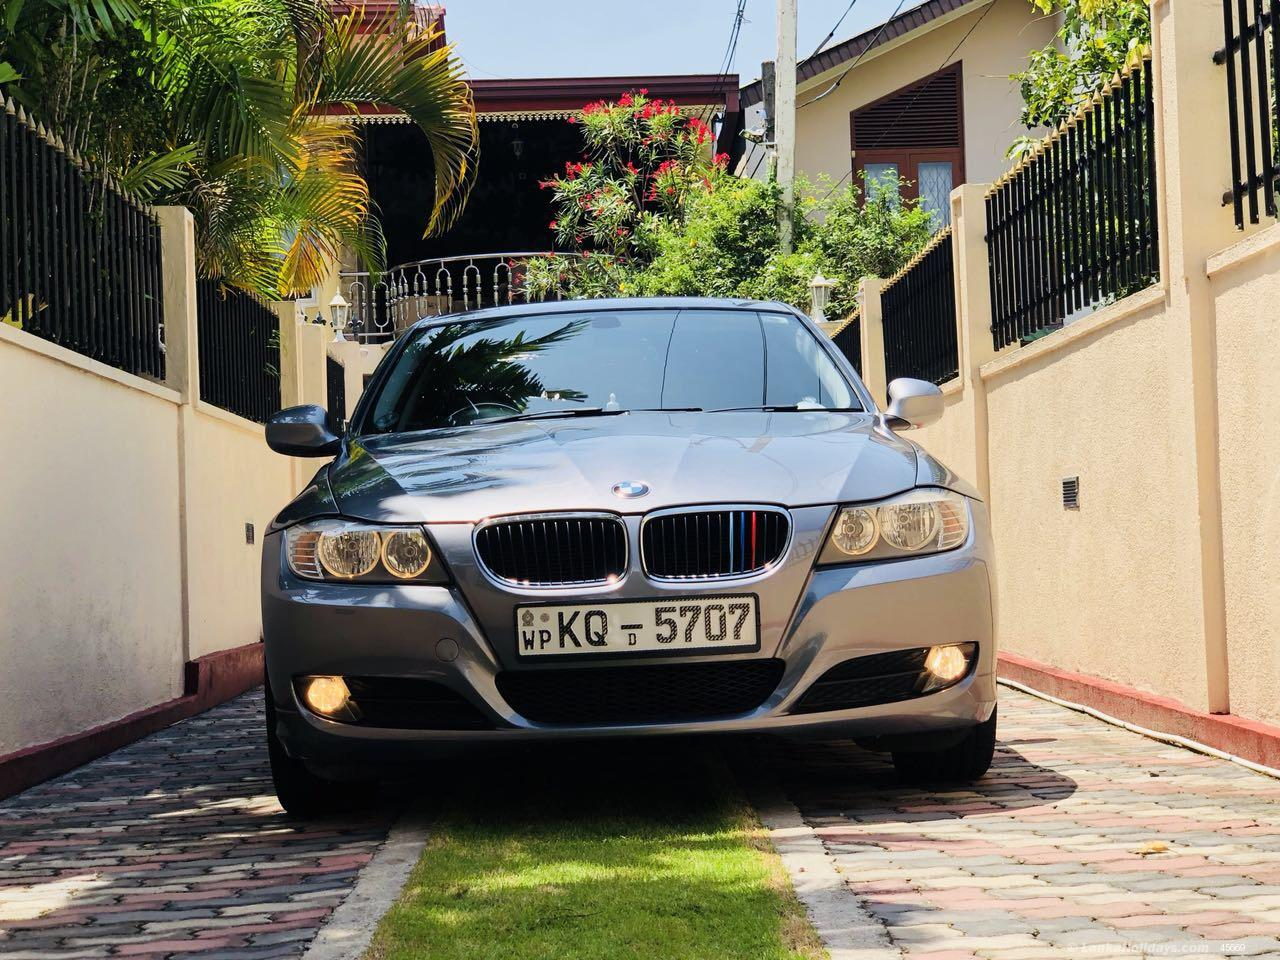 Sri Lanka Car Rentals Hire Bmw Car Hire For Foreigners Only